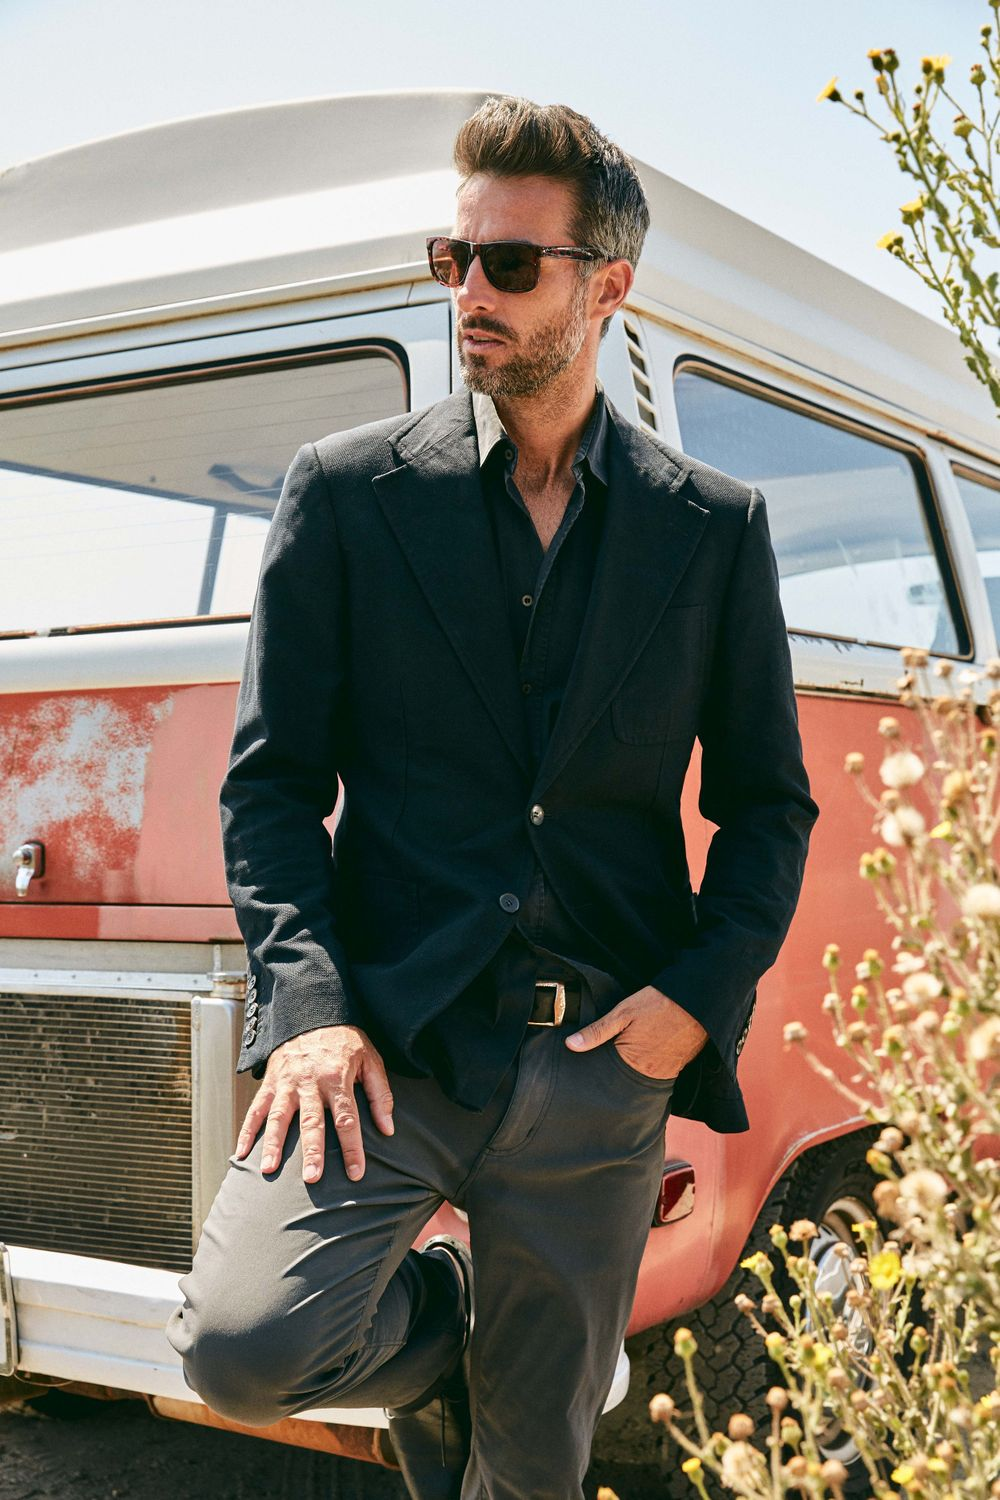 Model Colin Devitt from LA Models wearing RayBan's and Gucci suit jacket blazer Eddy Bauer pants El Matador State Beach